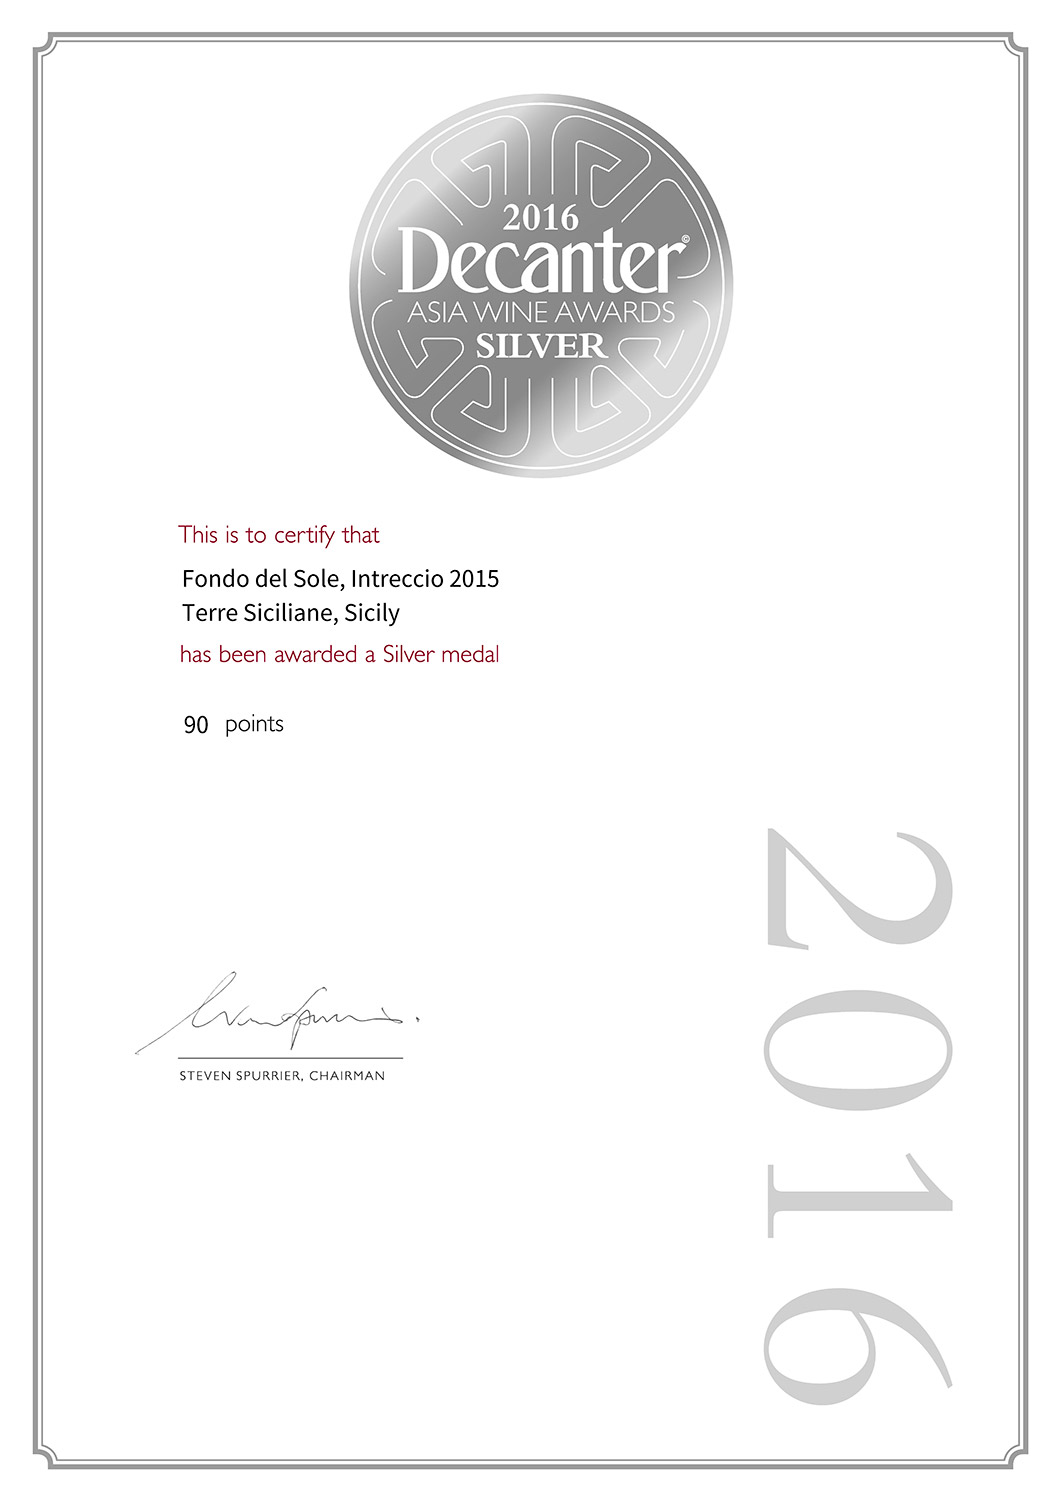 certificate_decanter2016_intreccio2015